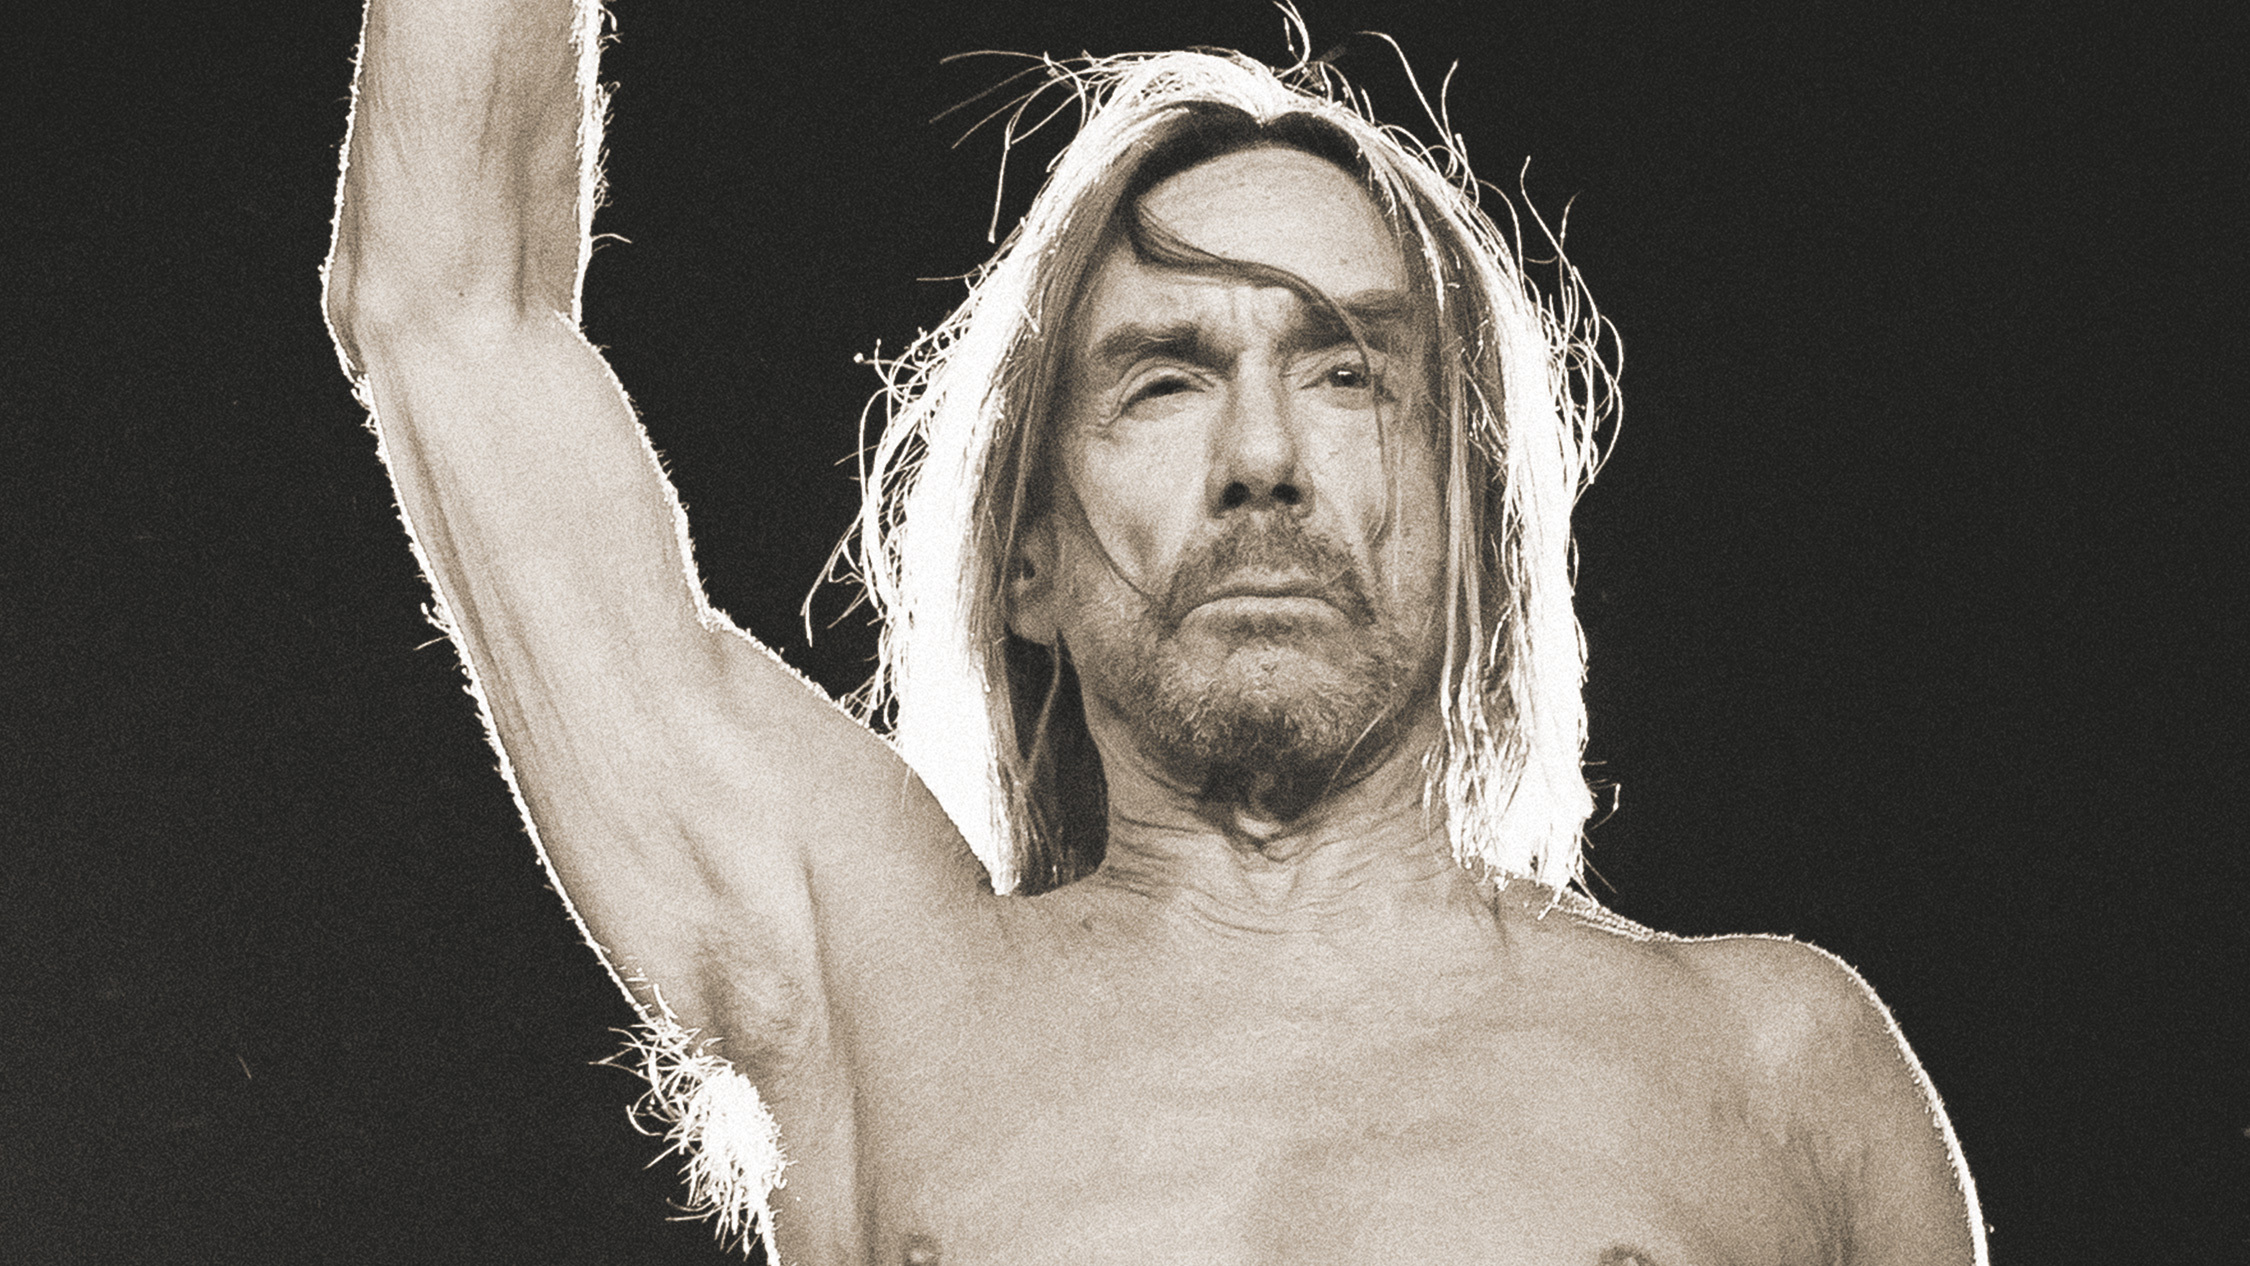 Press shot of Iggy Pop